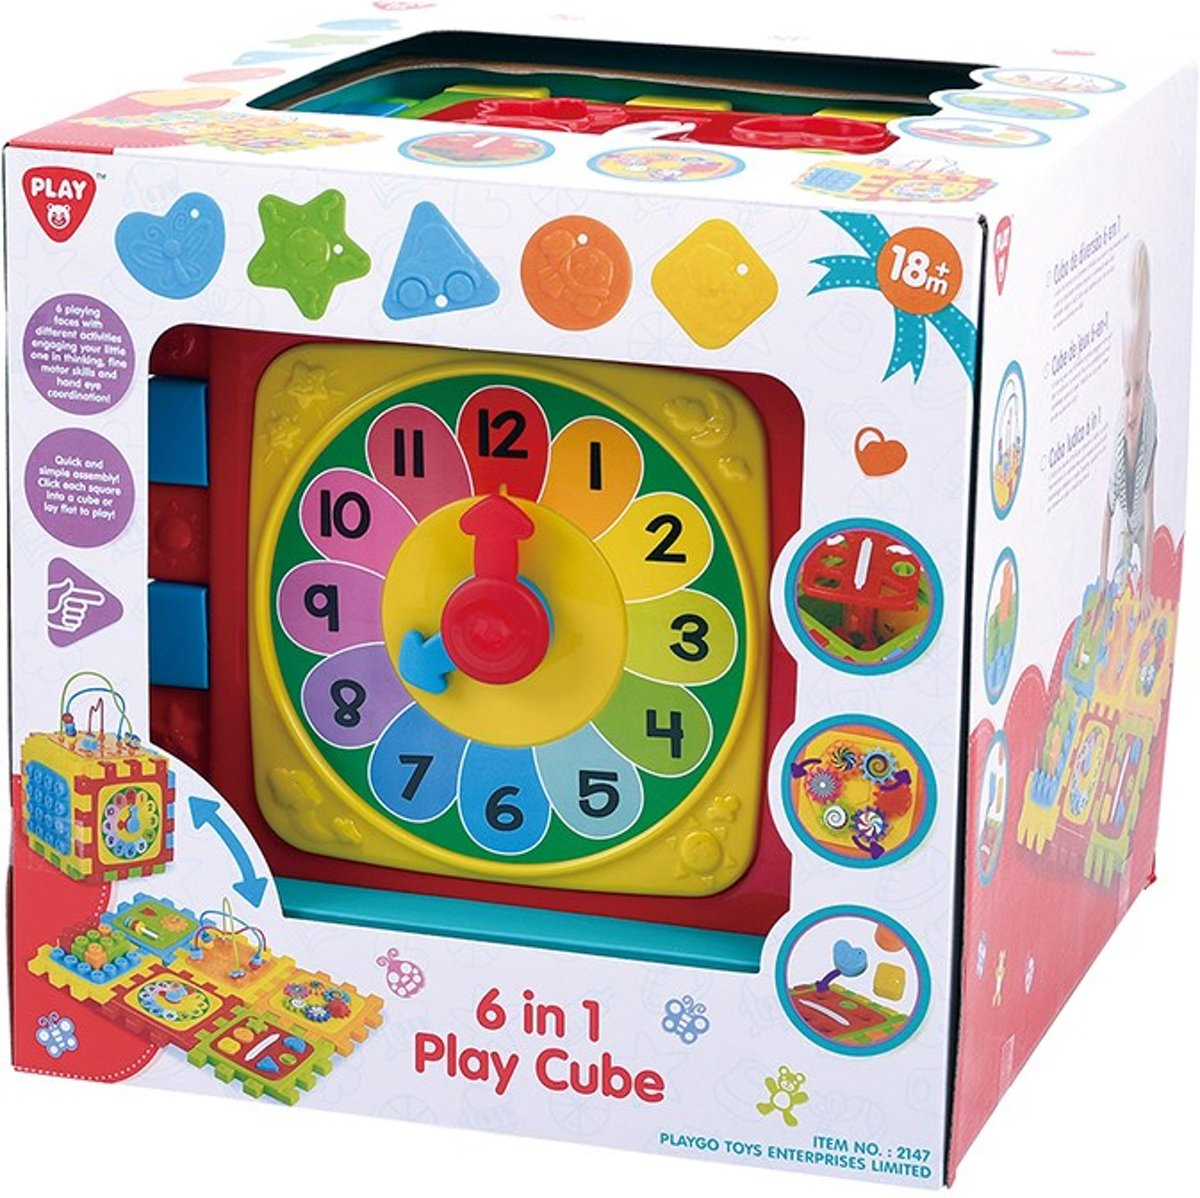 6 In 1 Play Cube PLAYGO - Speelkubus